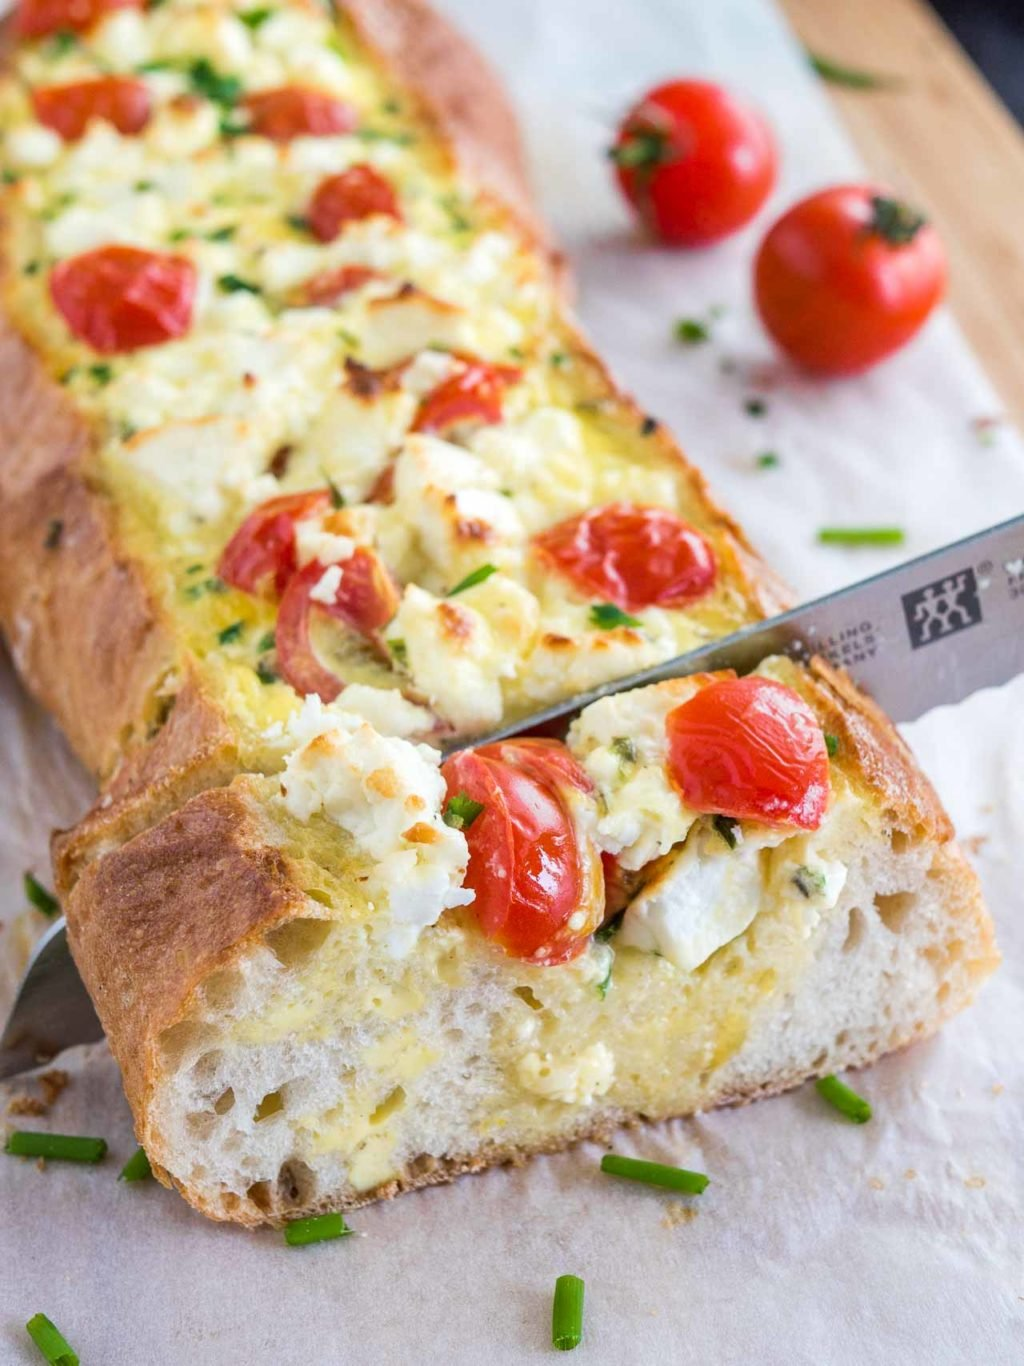 Tomato Feta Stuffed Bread